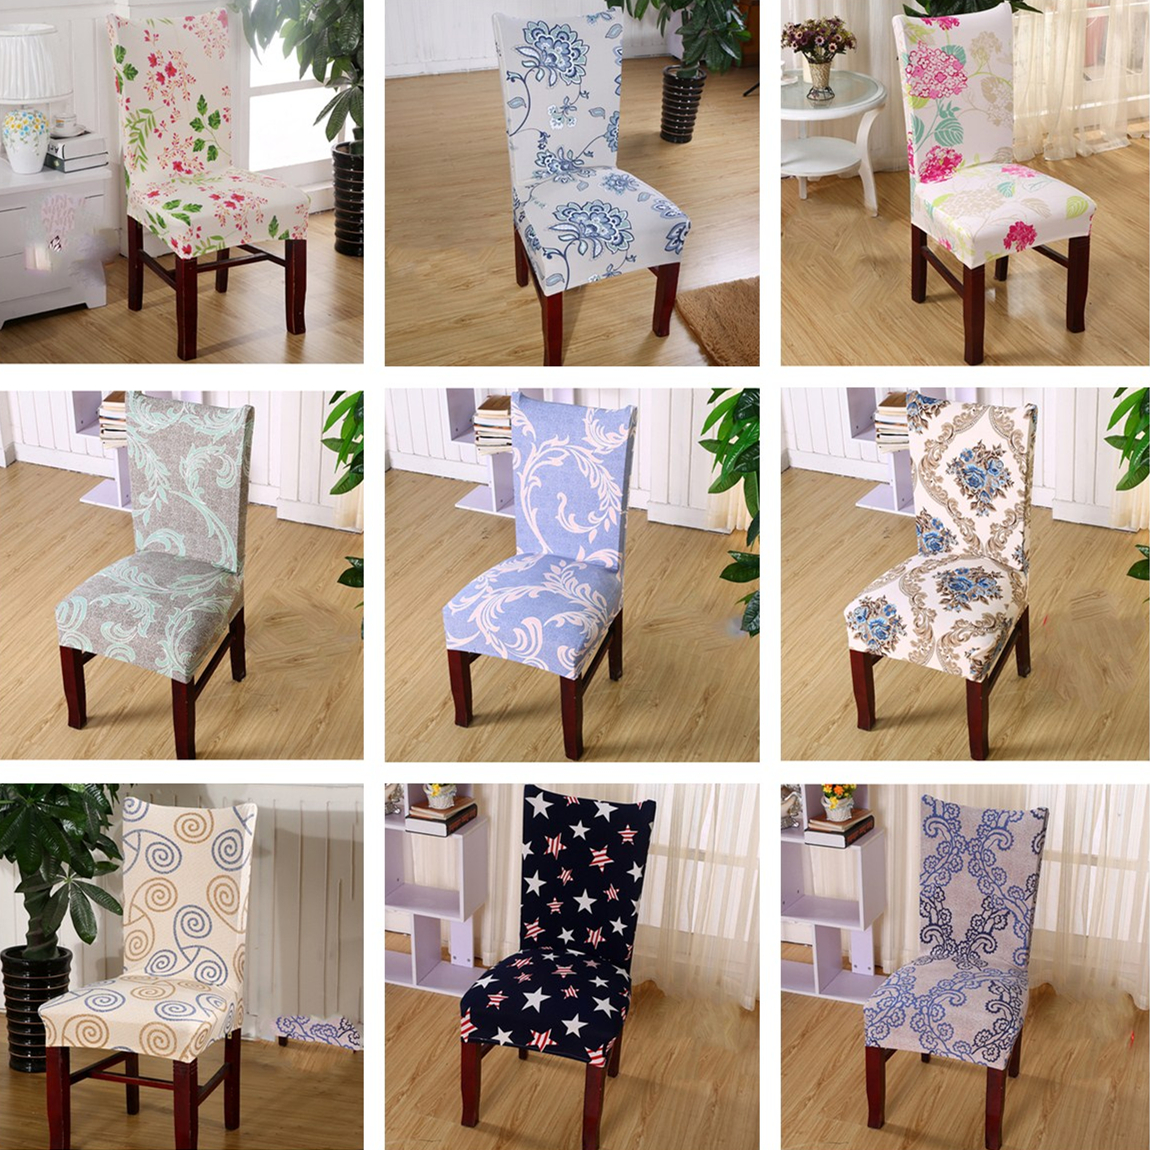 Vintage flowers Printing Dining Chair Cover Removable Elastic Banquet Folding Dining Room Chair Cover For Modern Kitchen Chair